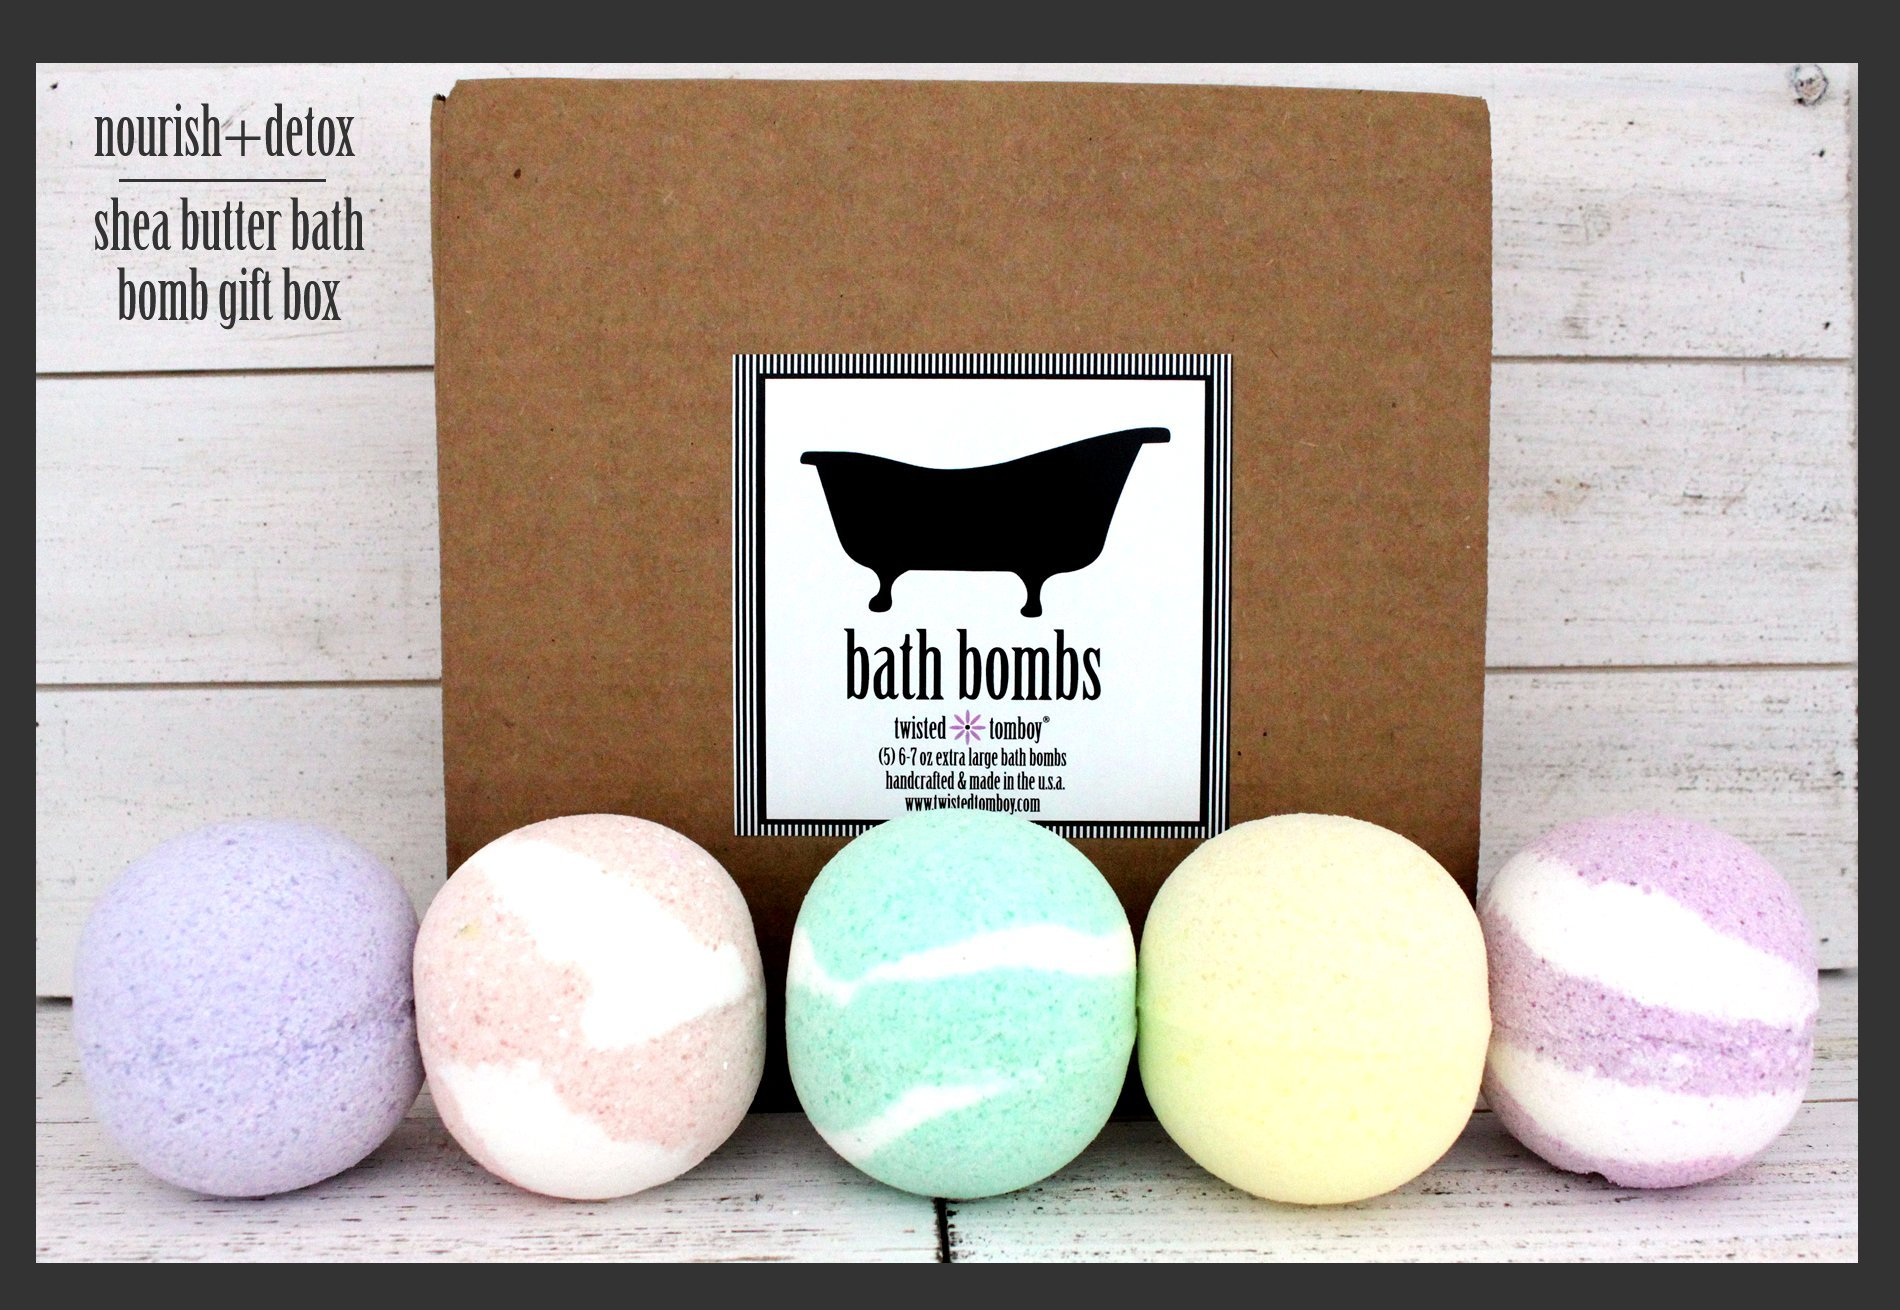 Extra Large Shea Butter Bath Bomb 5-Pack Gift Set (Packed With Lush, Nourishing, Natural, Moisturizing and Detoxing Ingredients - Contains (5) Giant 6-7 oz Fizzy Bombs) HANDMADE IN USA